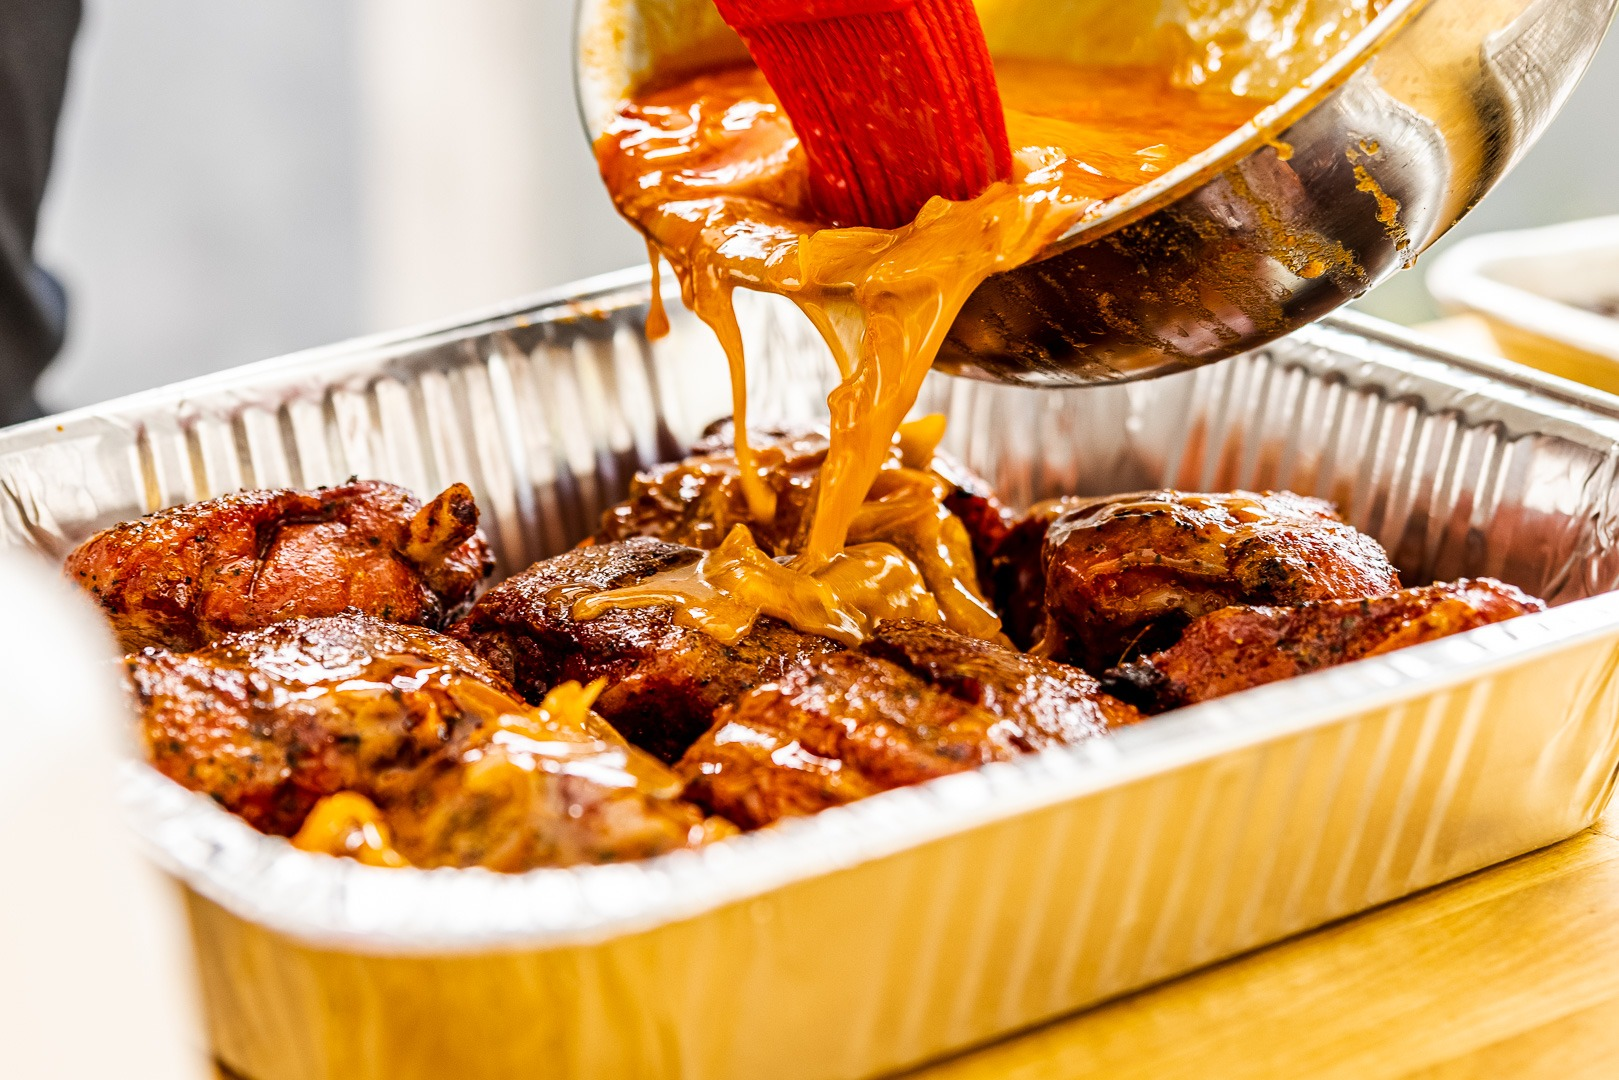 pouring sauce onto wings in pan